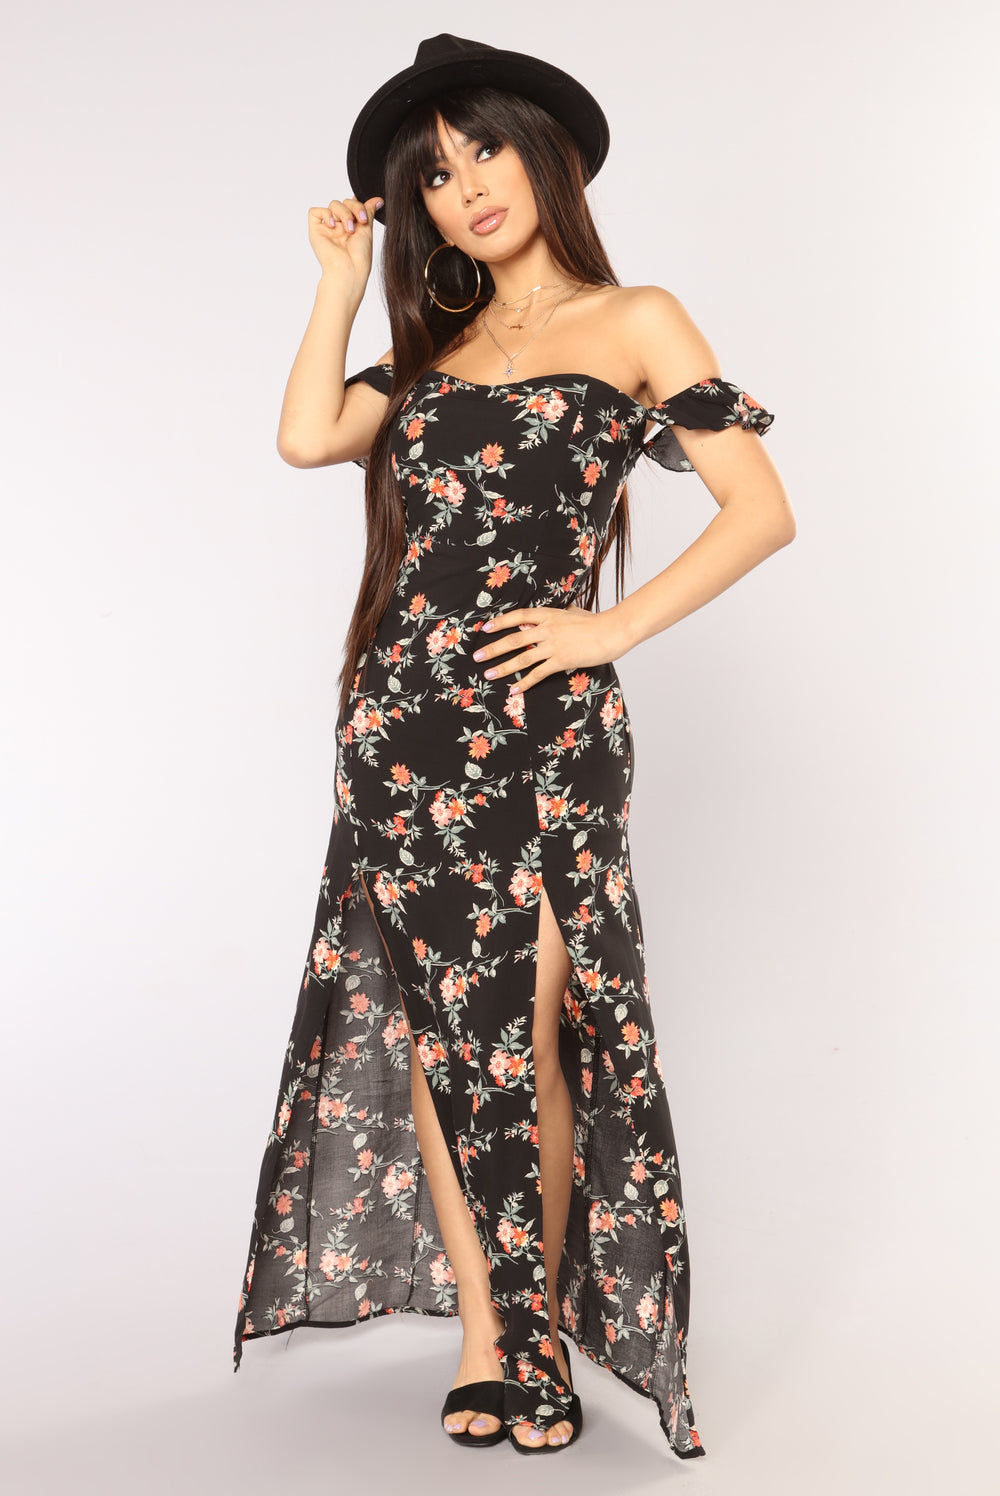 Plant Your Own Garden Dress - Black